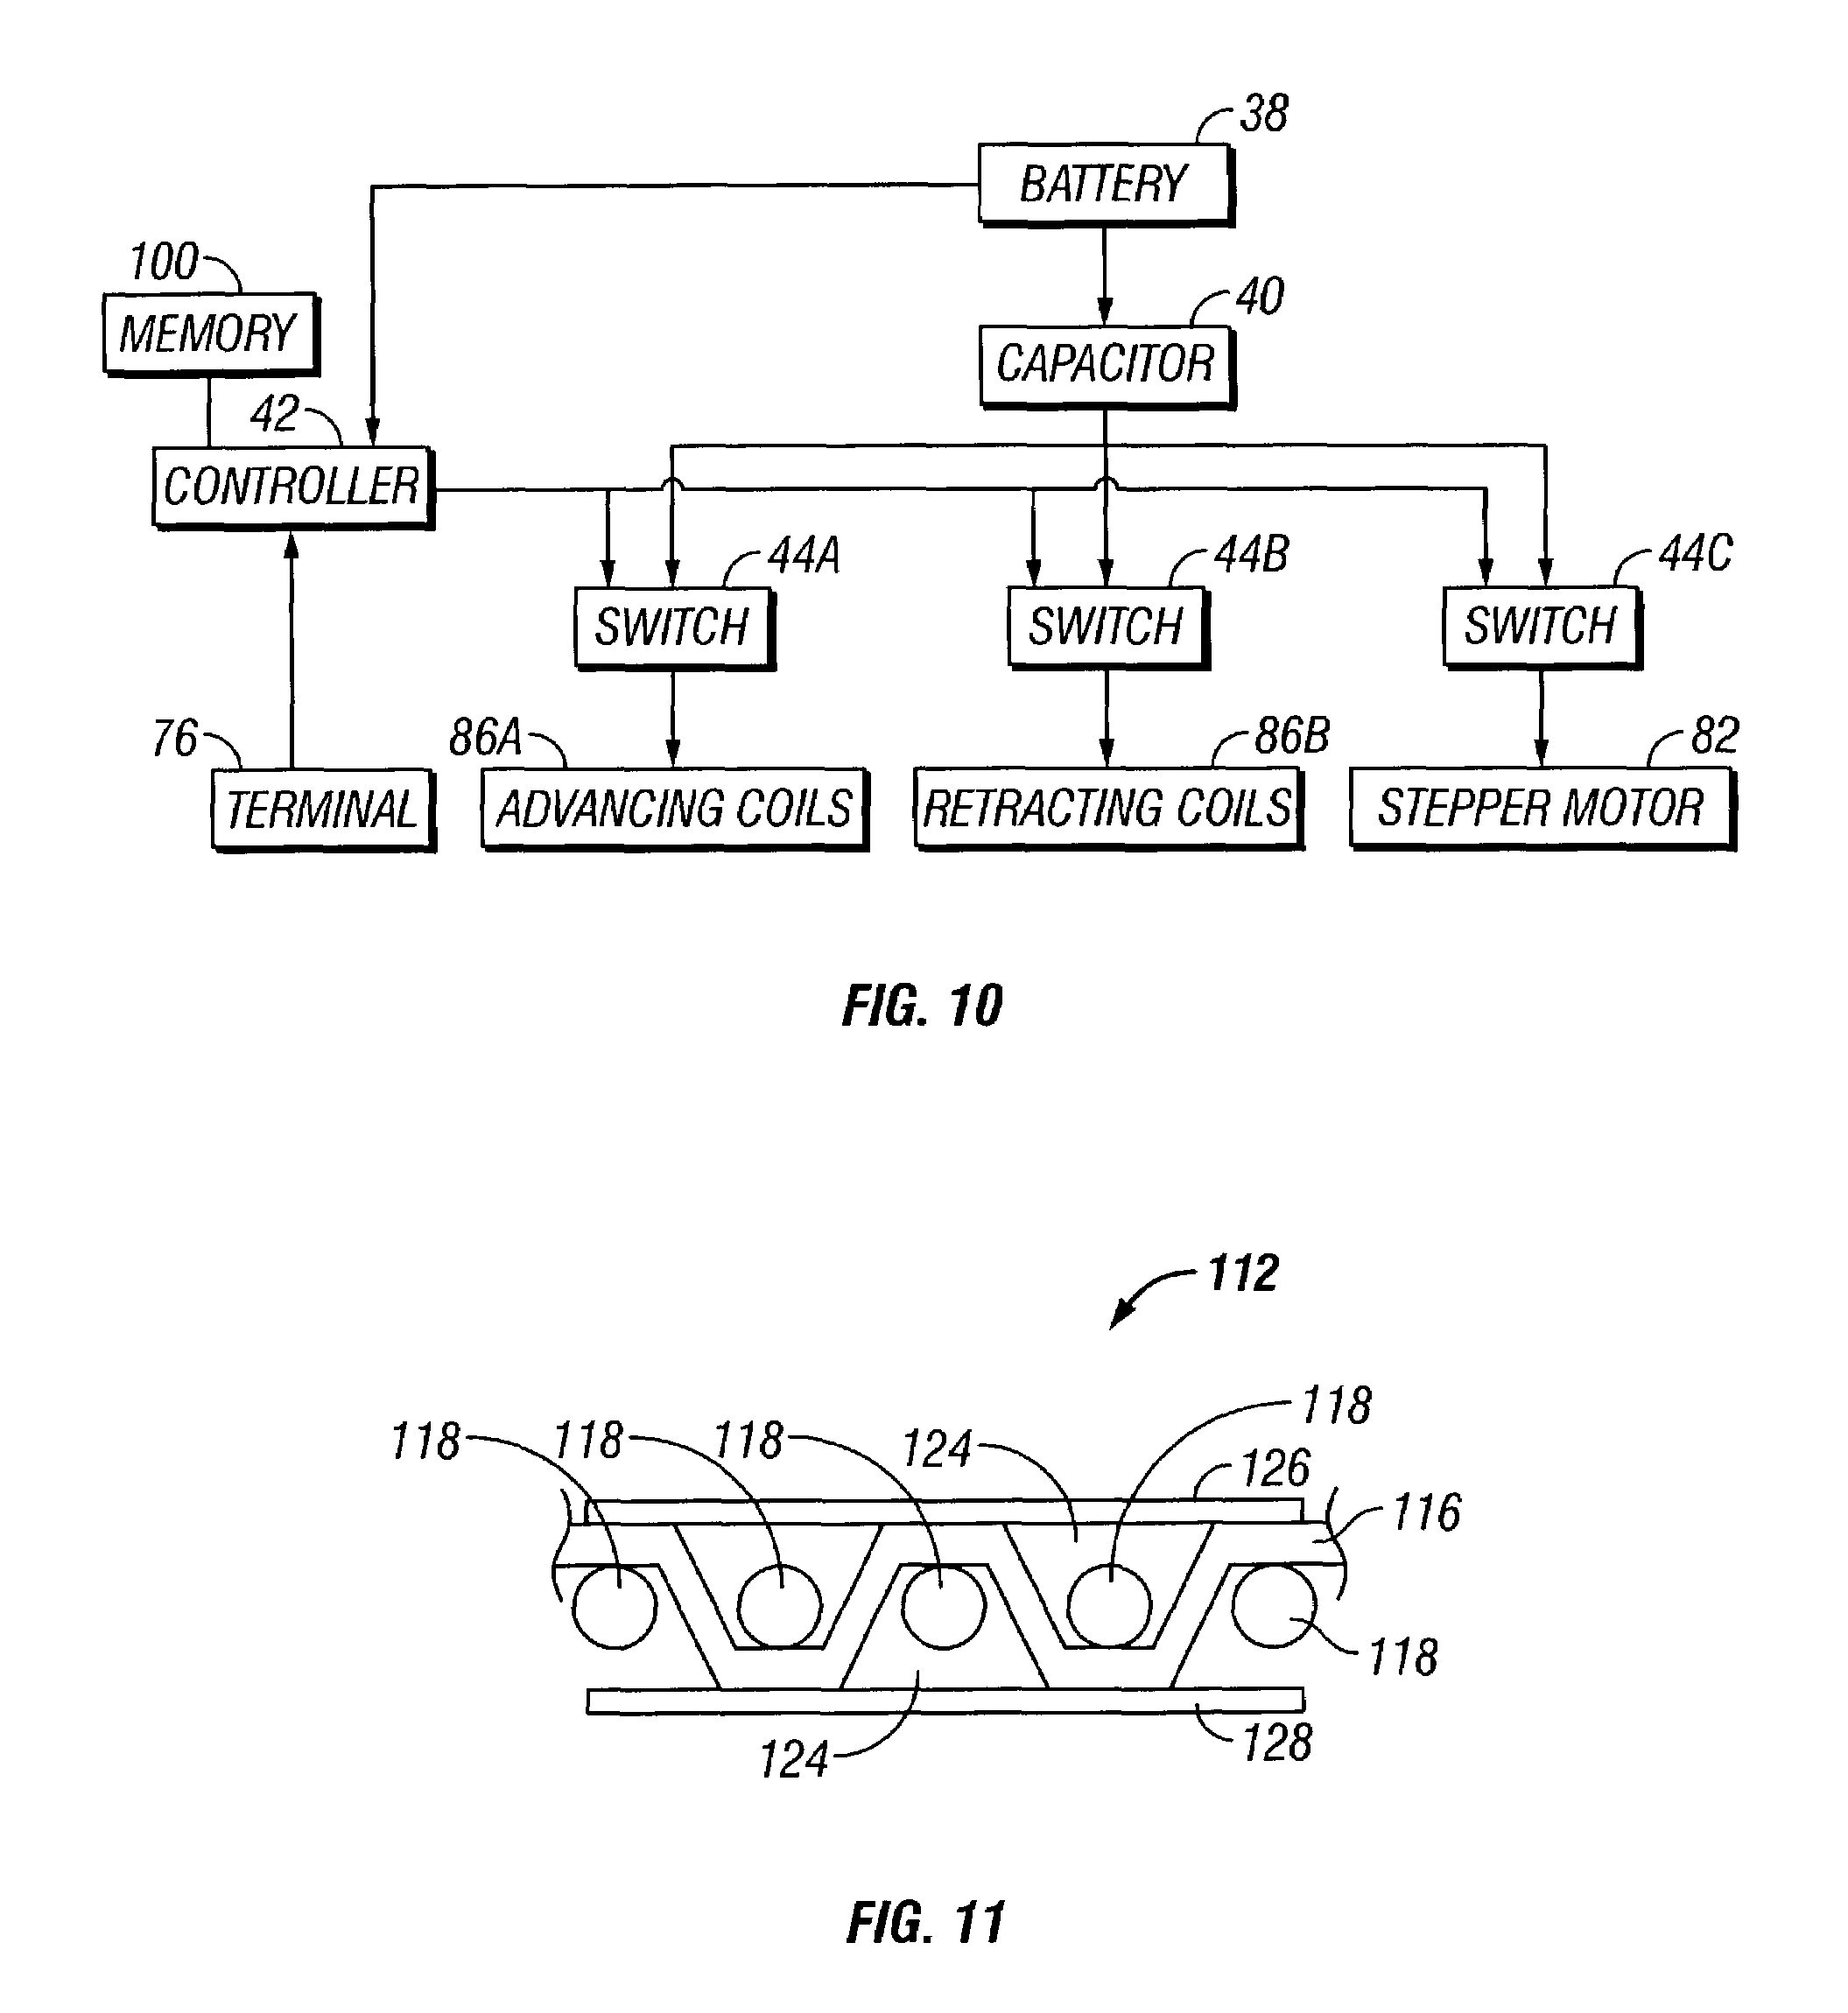 Us7713214b2 Method And Apparatus For A Multi Use Body Fluid Mazda 929 Engine Electrical Circuit Charging System Checking Procedures Sampling Device With Optical Analyte Sensing Google Patents